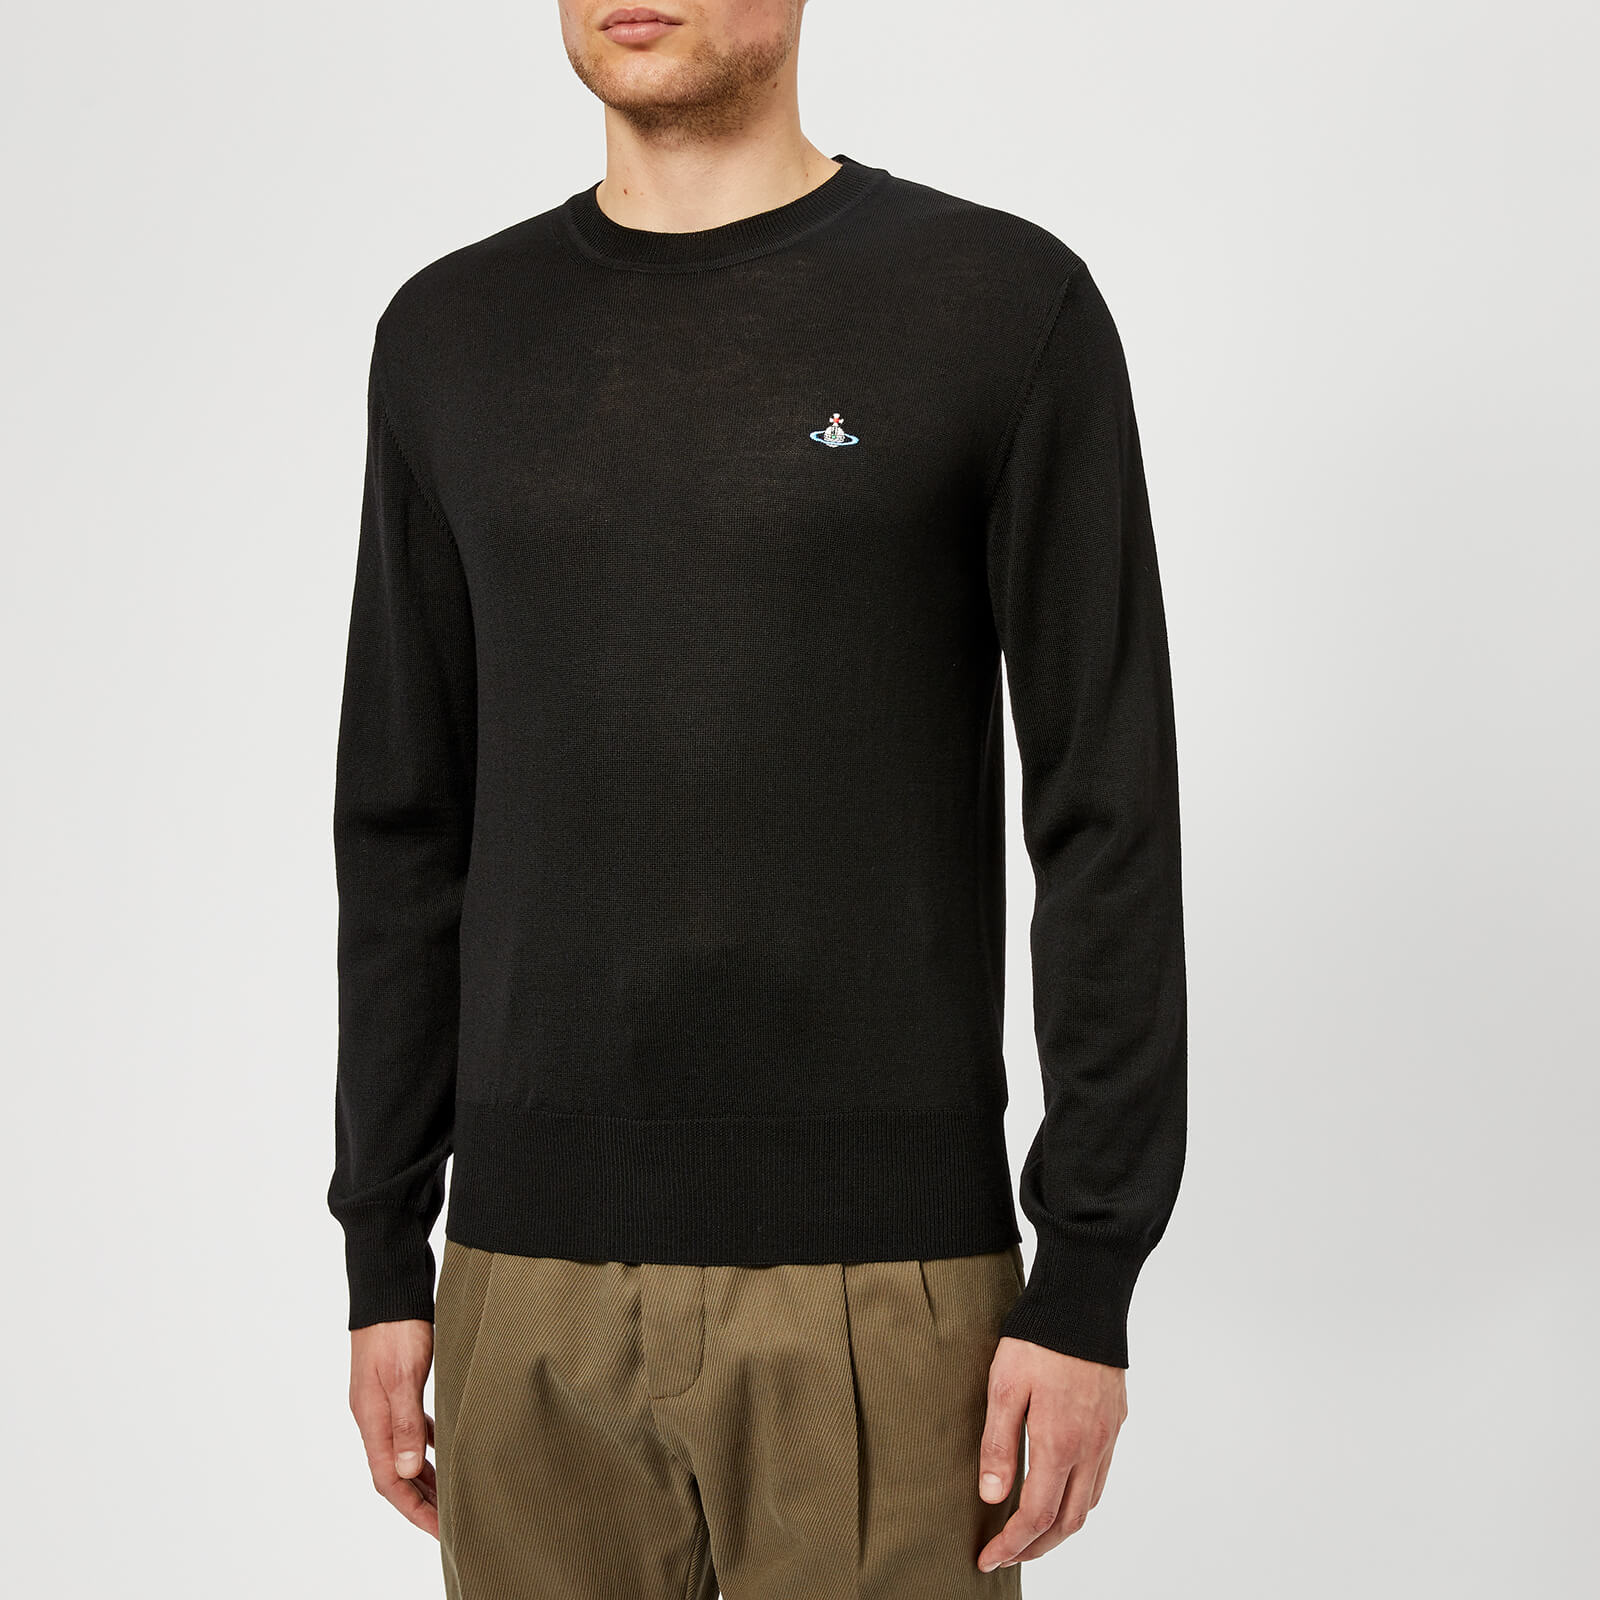 364558950a Vivienne Westwood Men's Classic Round Neck Knitted Jumper - Black - Free UK  Delivery over £50